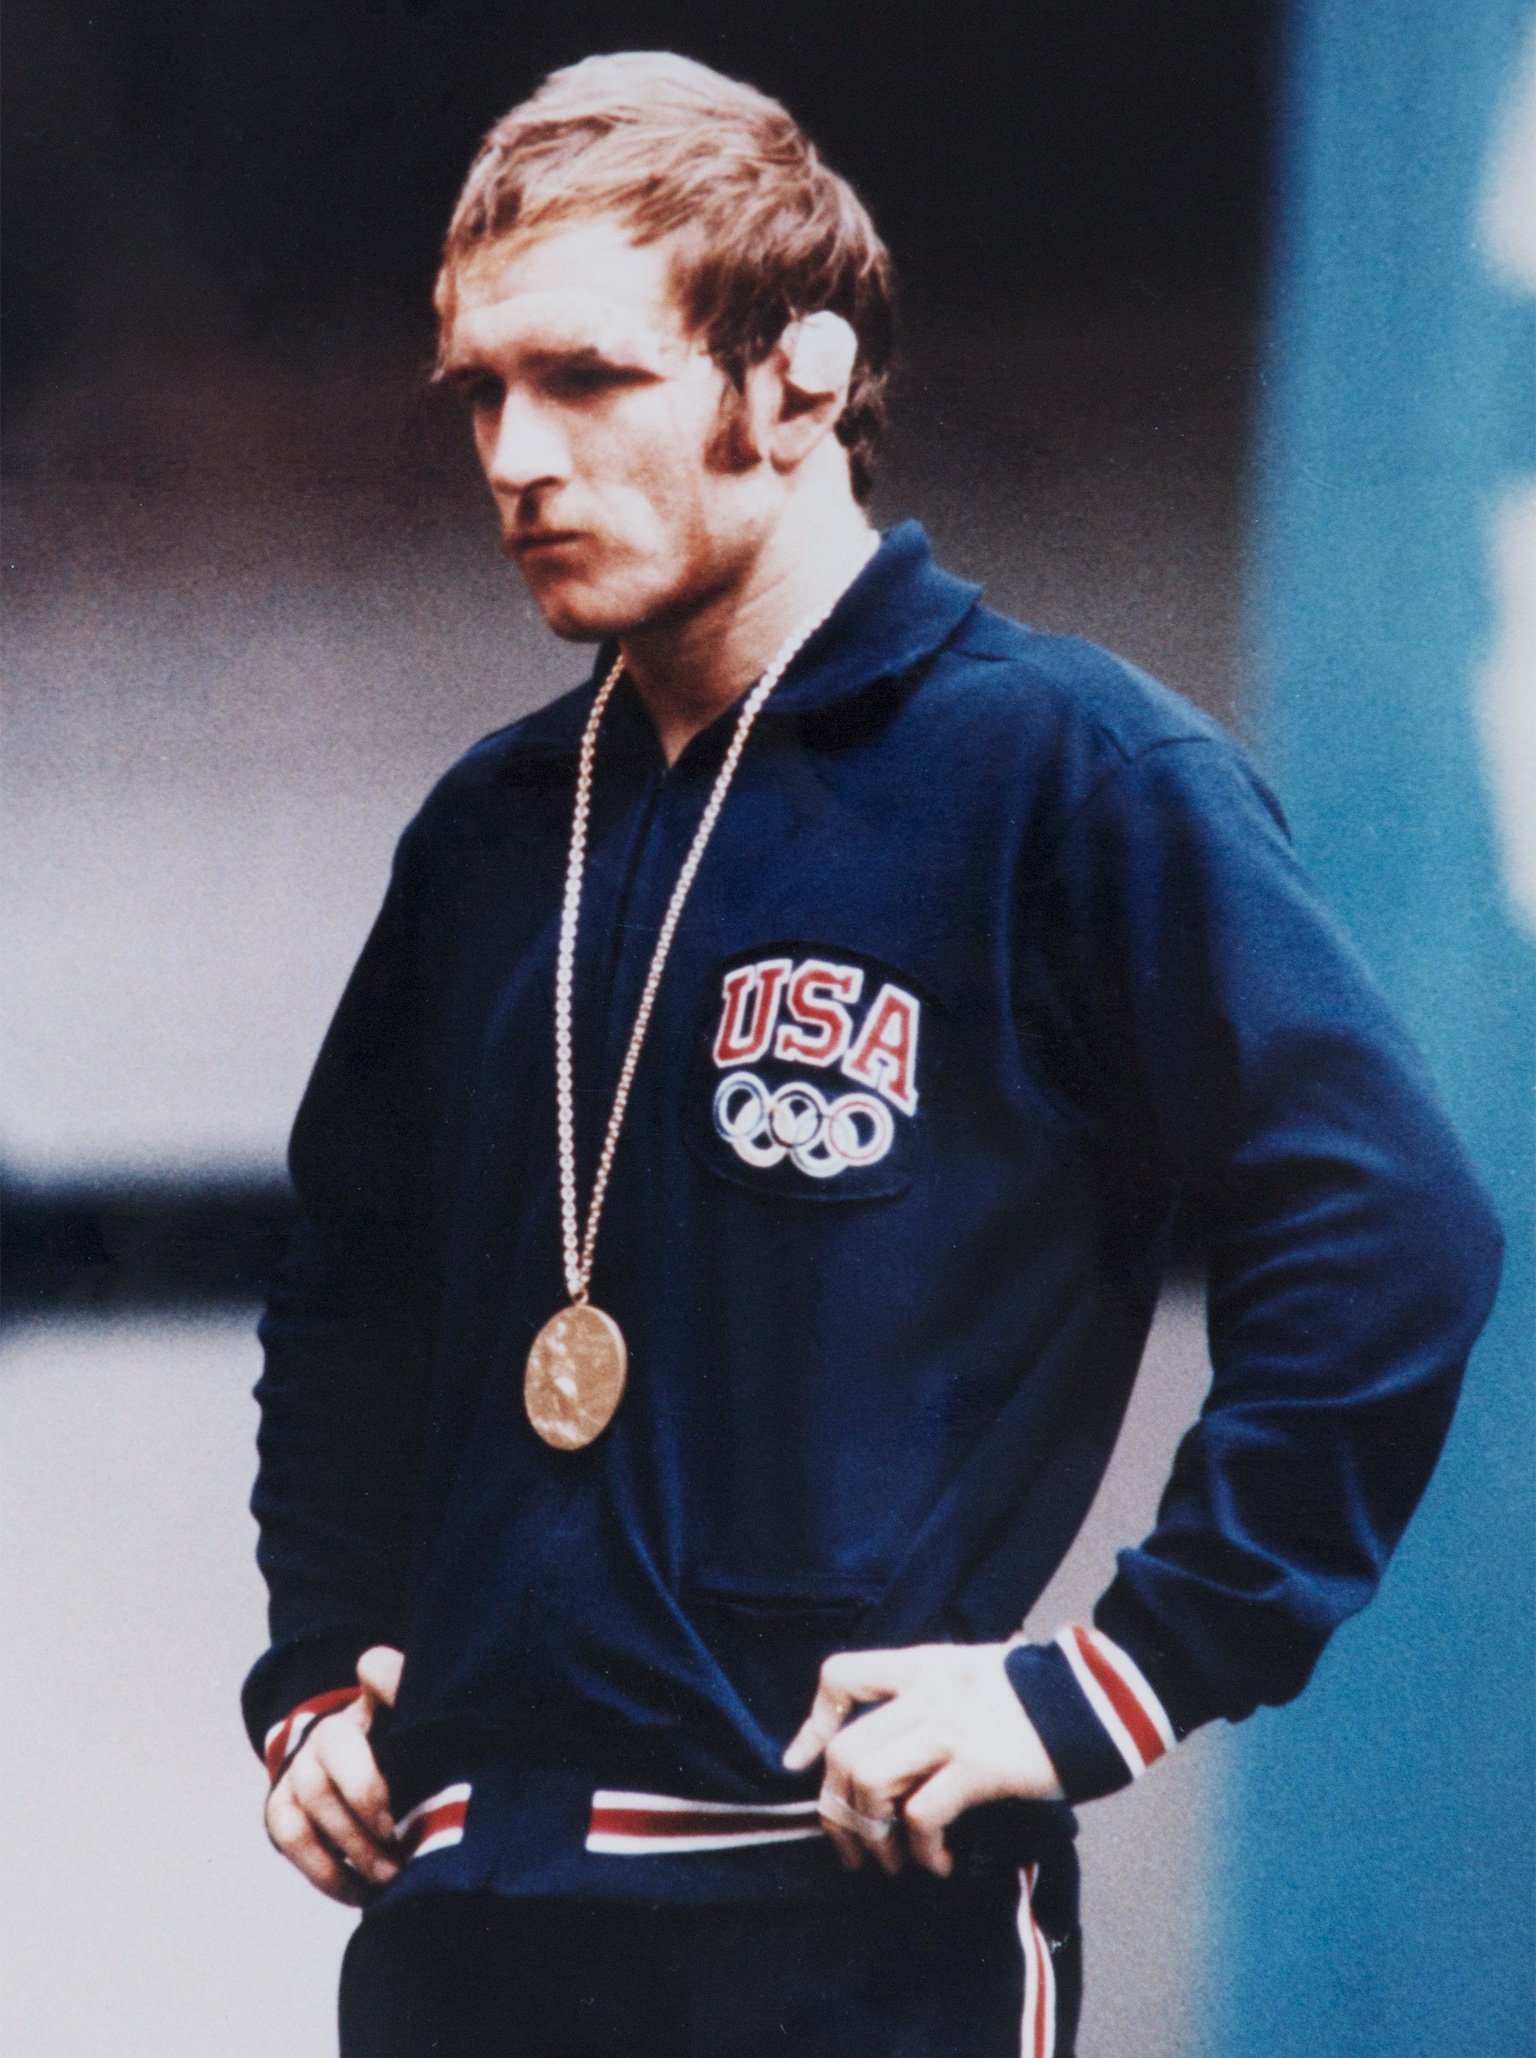 Dan Gable on the medal stand at the 1972 Olympics in Munich